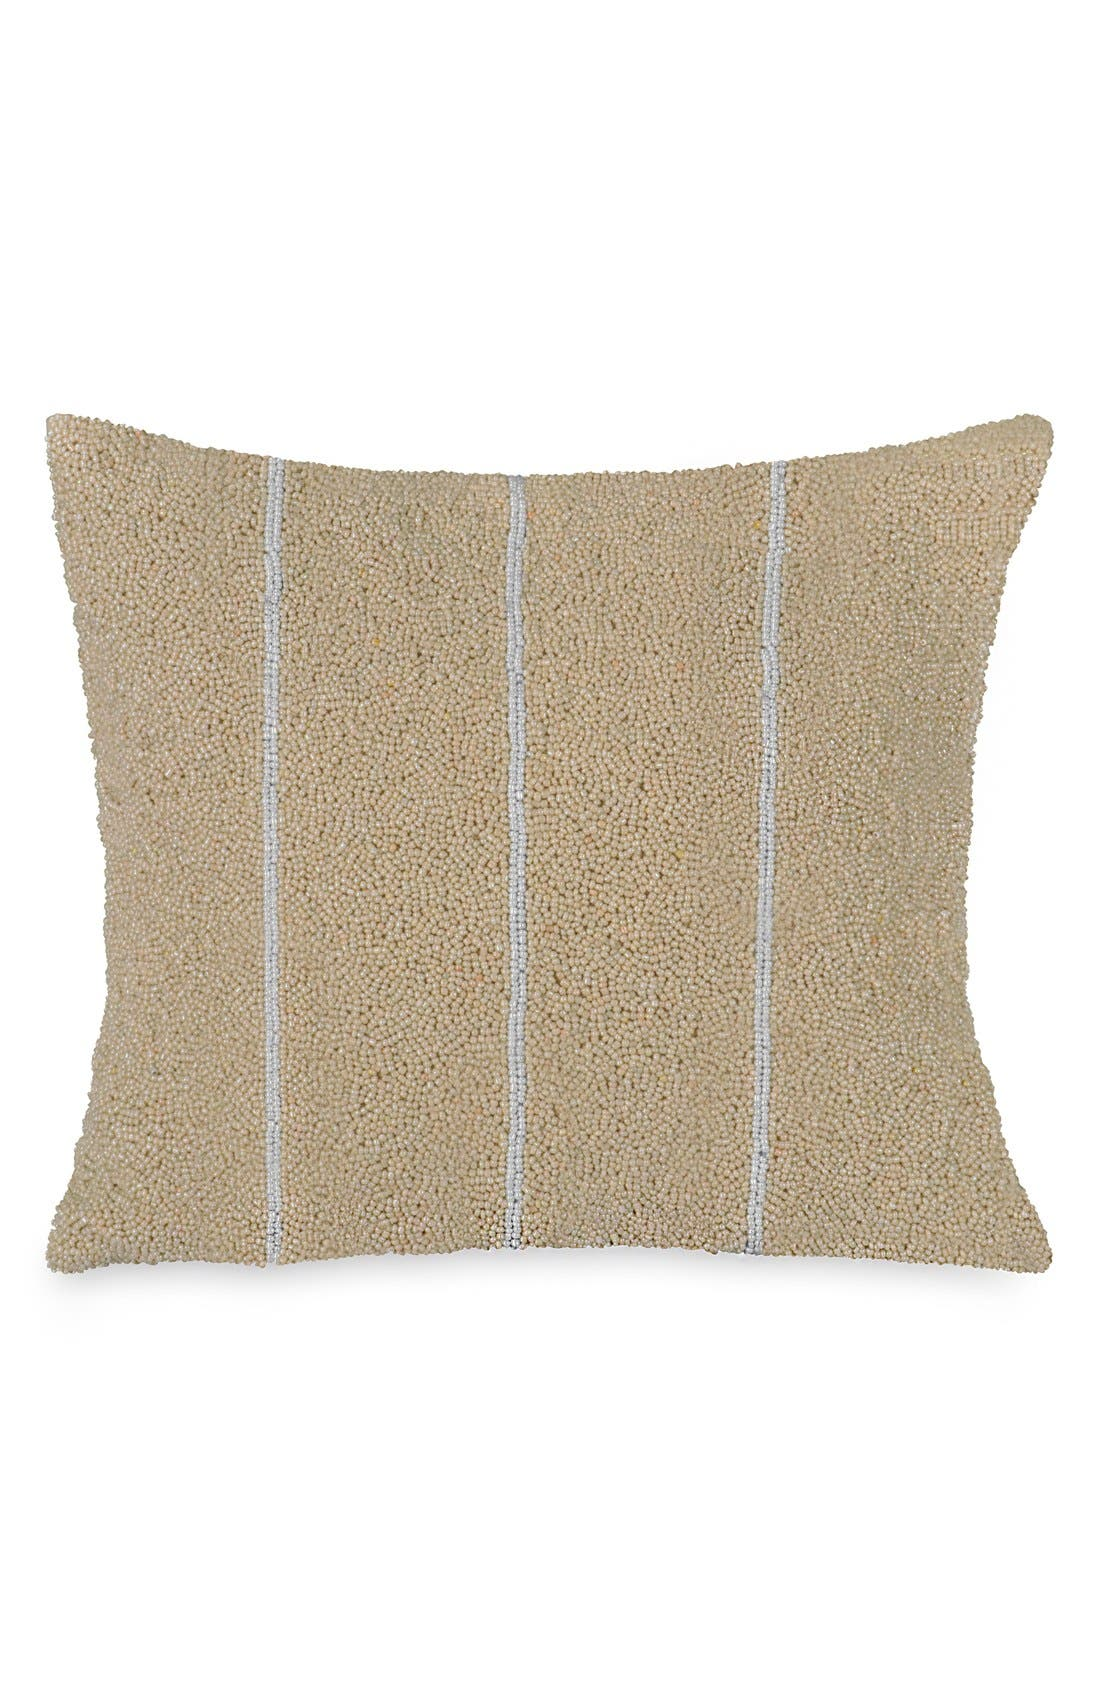 Donna Karan Collection 'Moonscape' Beaded Accent Pillow,                         Main,                         color, Champagne